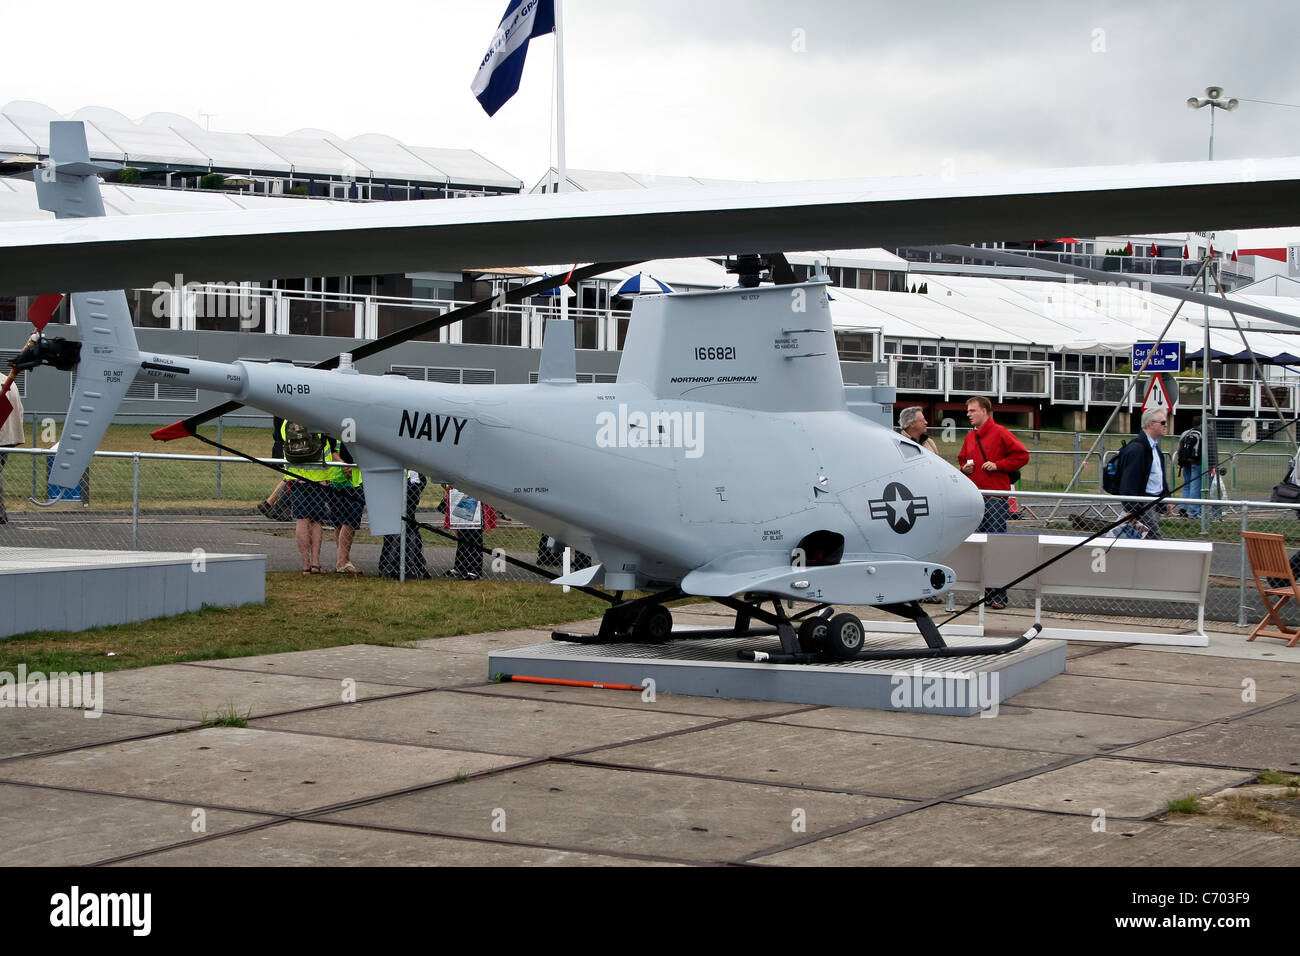 MQ-8B Fire Scout VTUAV Unmanned Aerial Vehicle at the Farnborough International Airshow - Stock Image